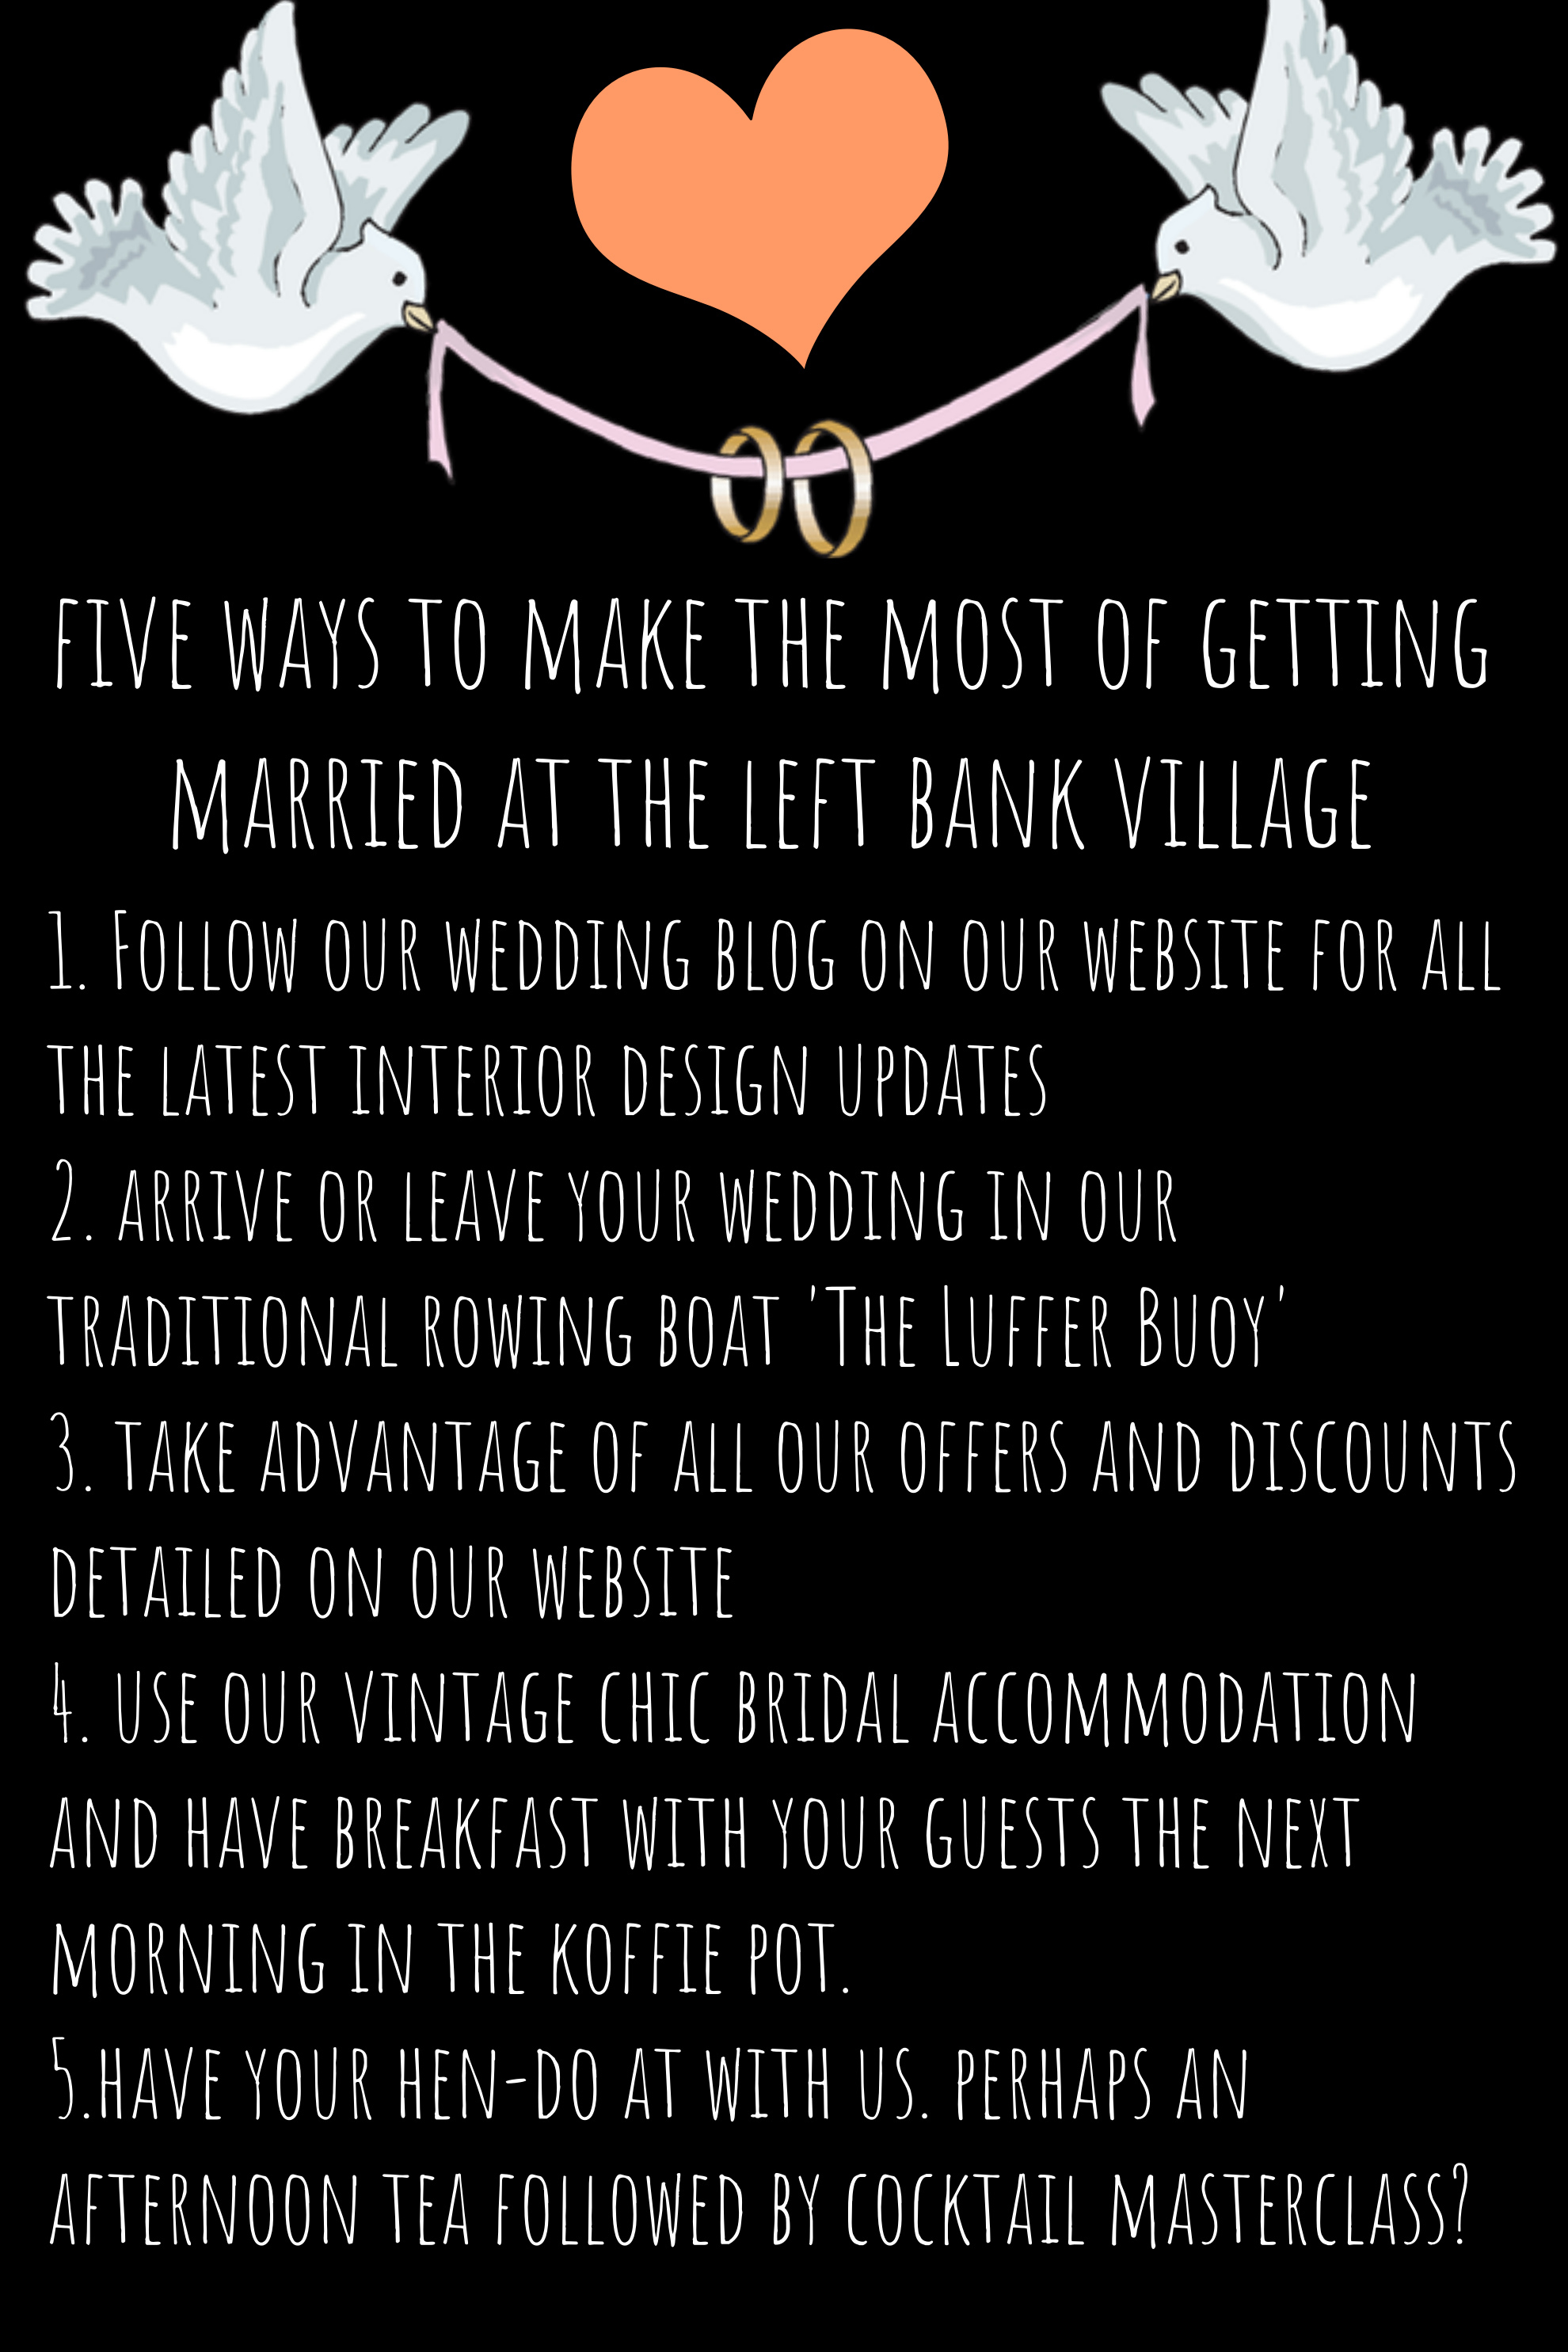 Five ways to make the most of getting married at The Left Bank Village..